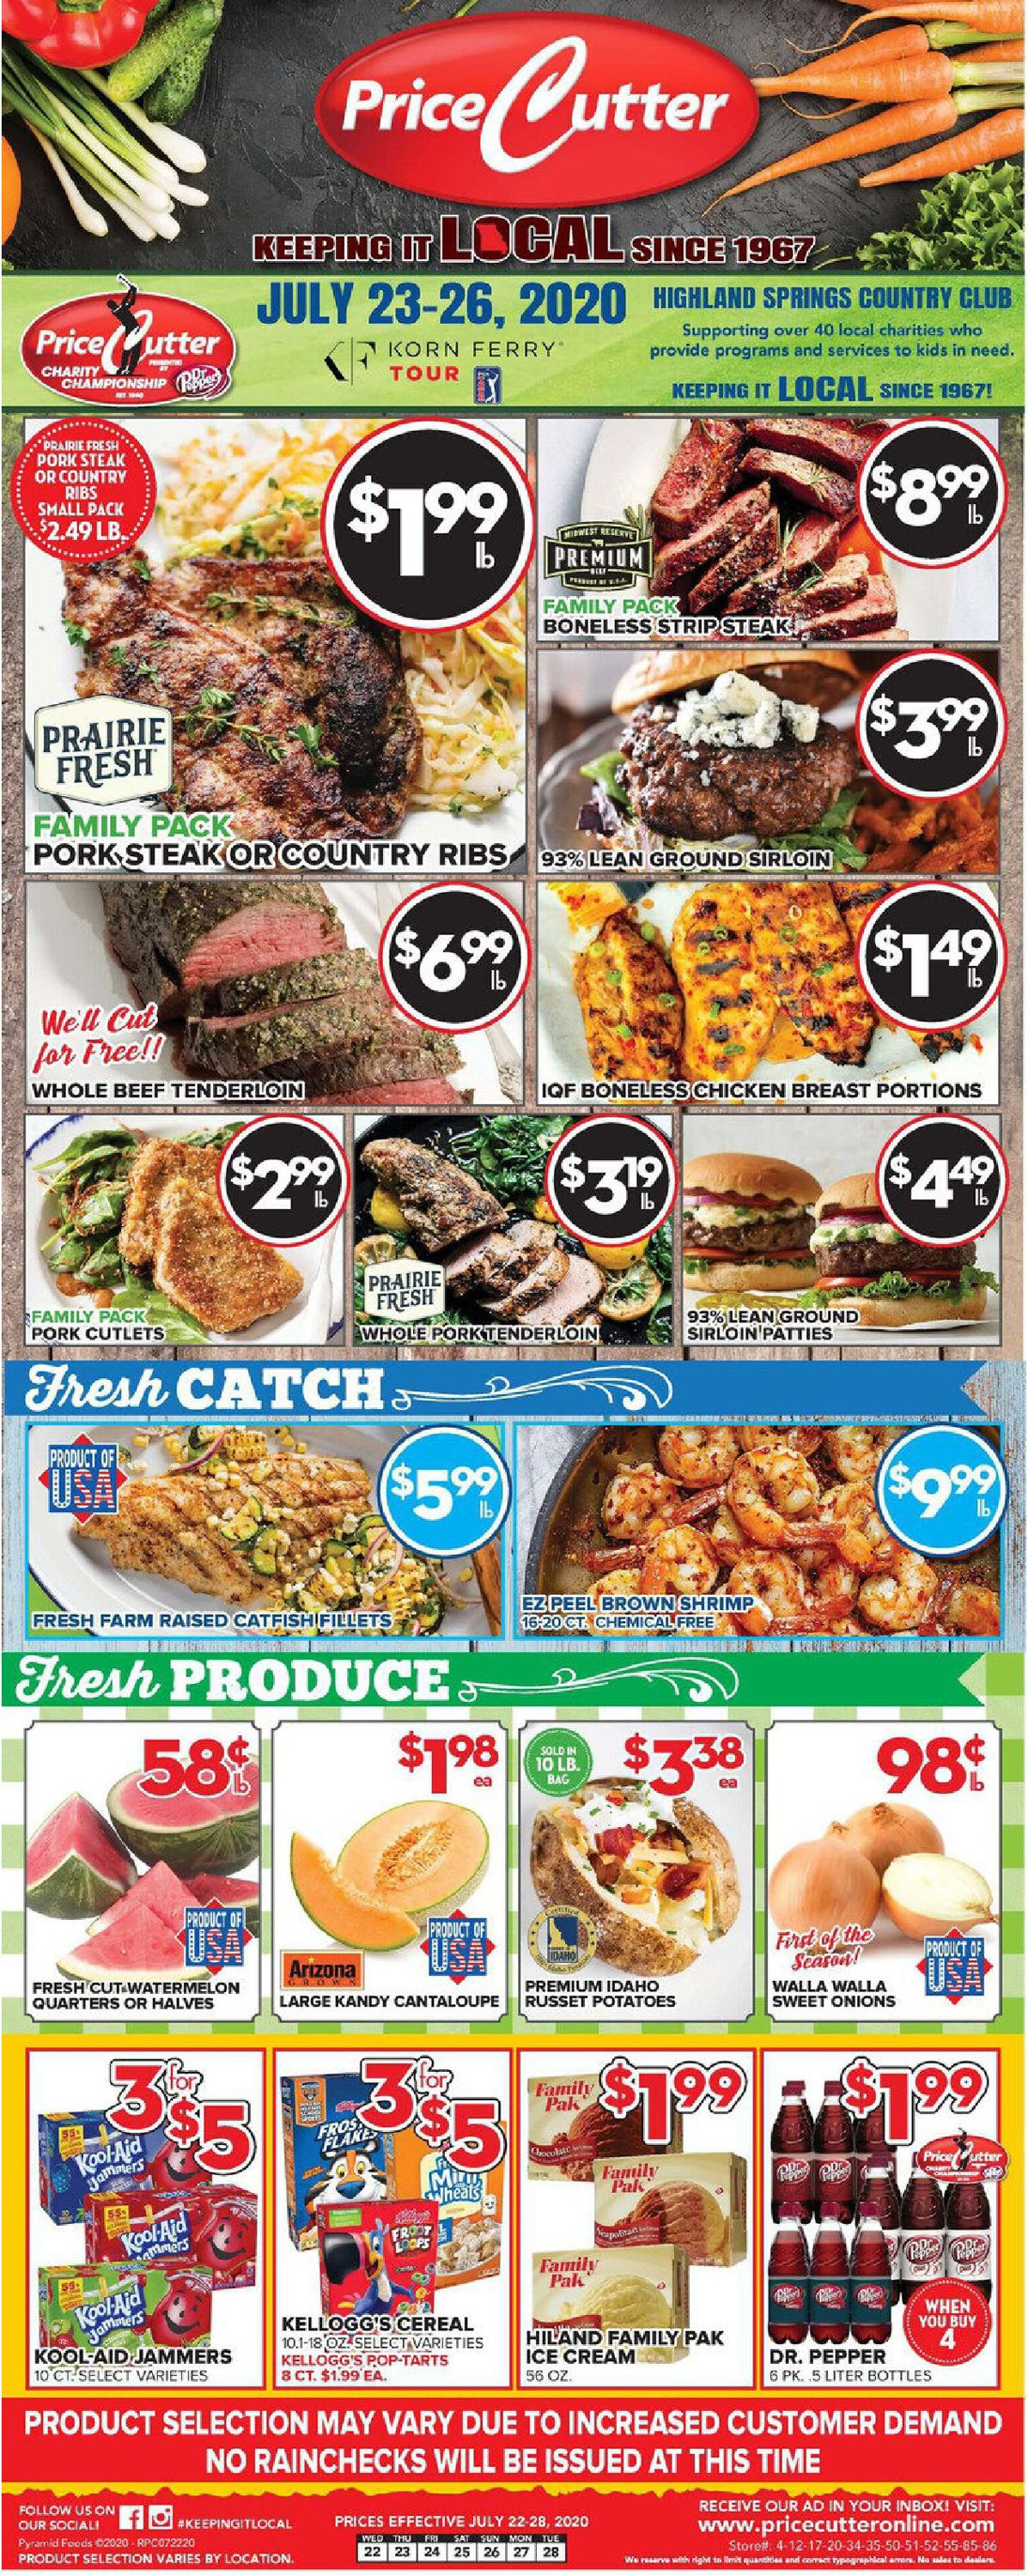 Price Cutter Weekly Ad Circular - valid 07/22-07/28/2020